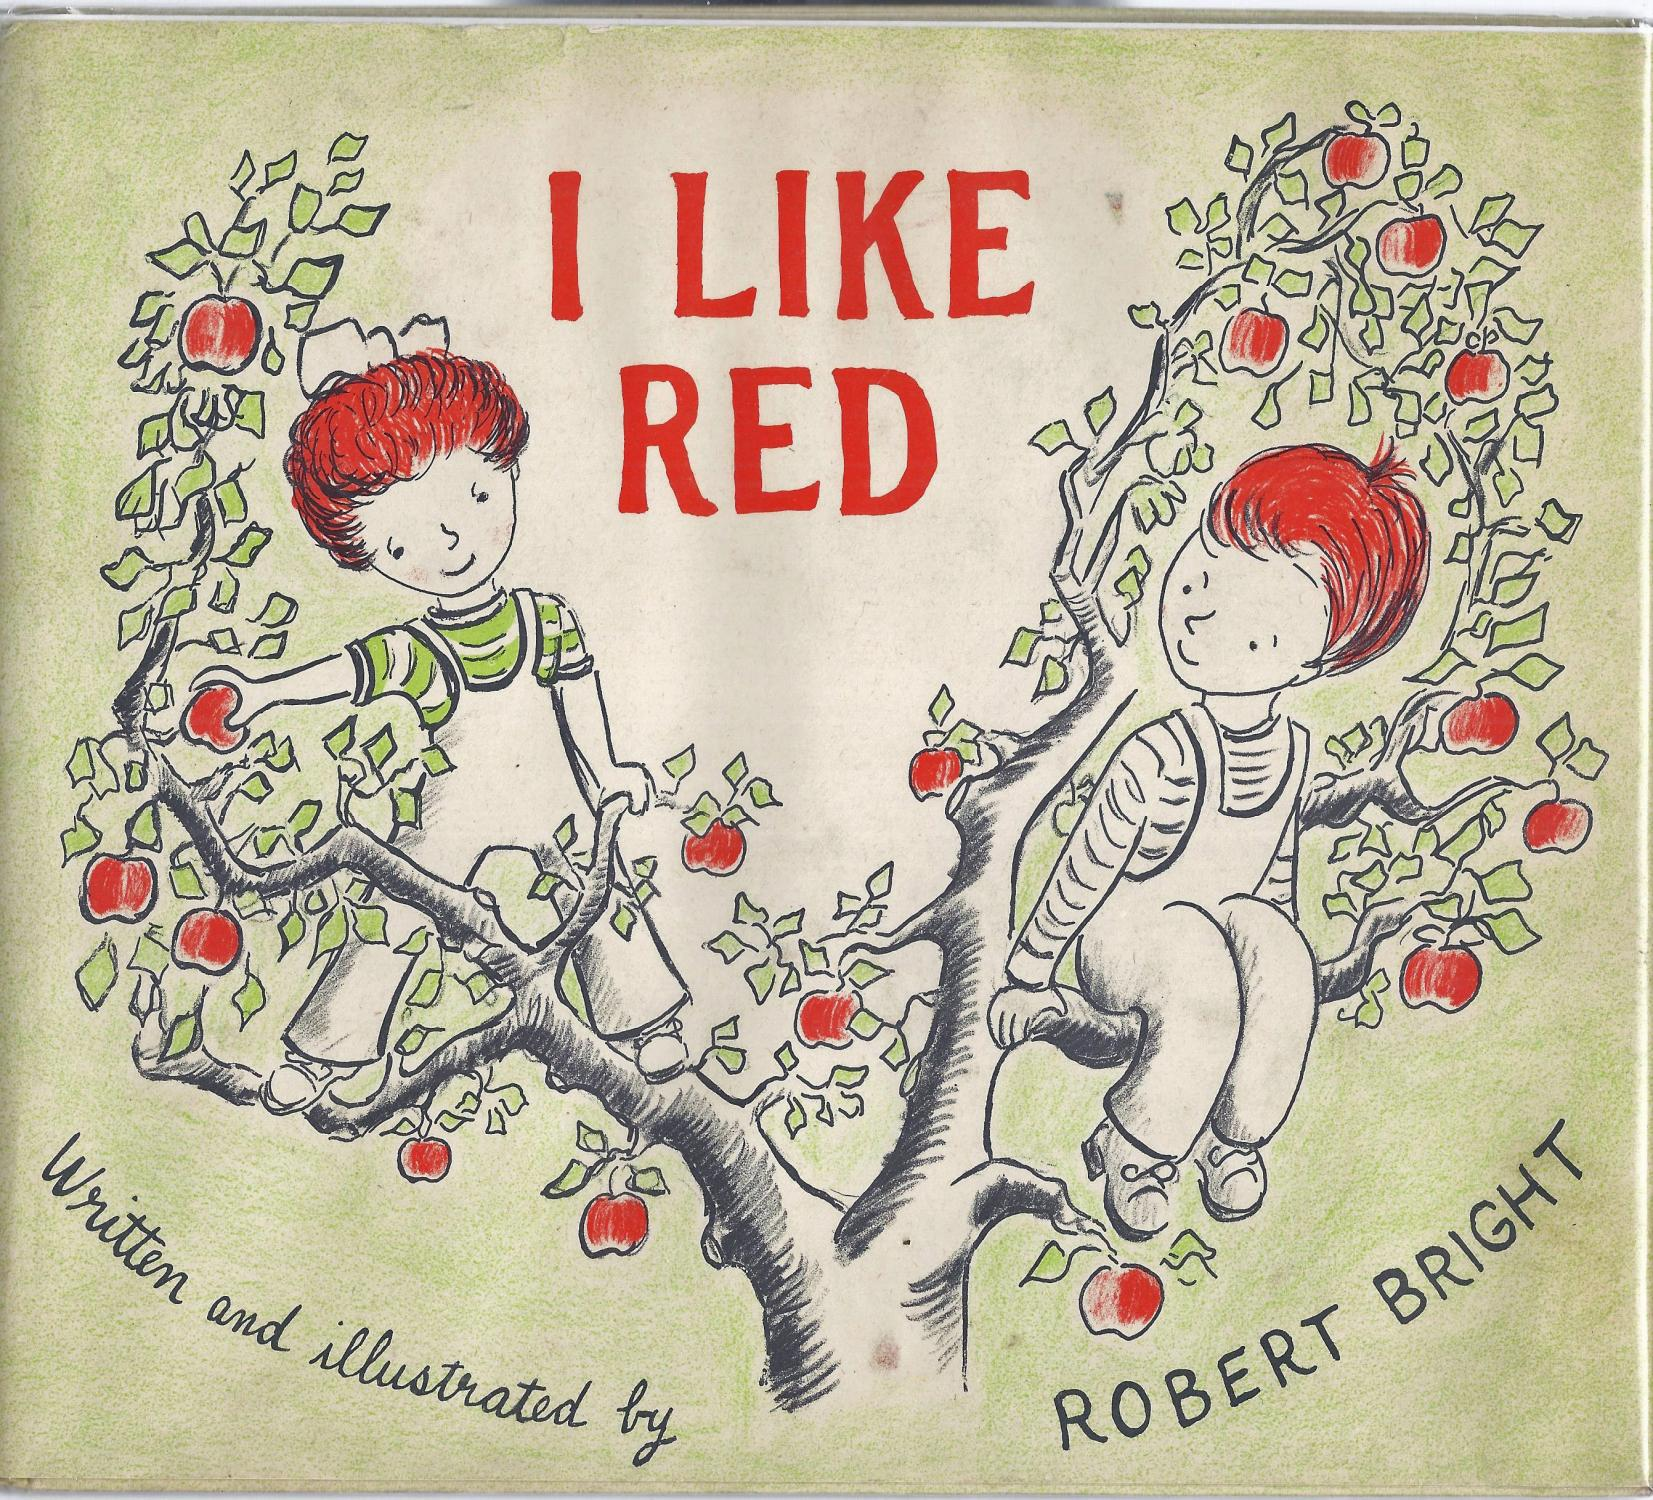 I Like Red Bright, Robert Very Good Hardcover Stated First Edition. Matte pictorial boards with small address sticker on front end paper, else tight, bright and unmarked throughout. Lightly worn,